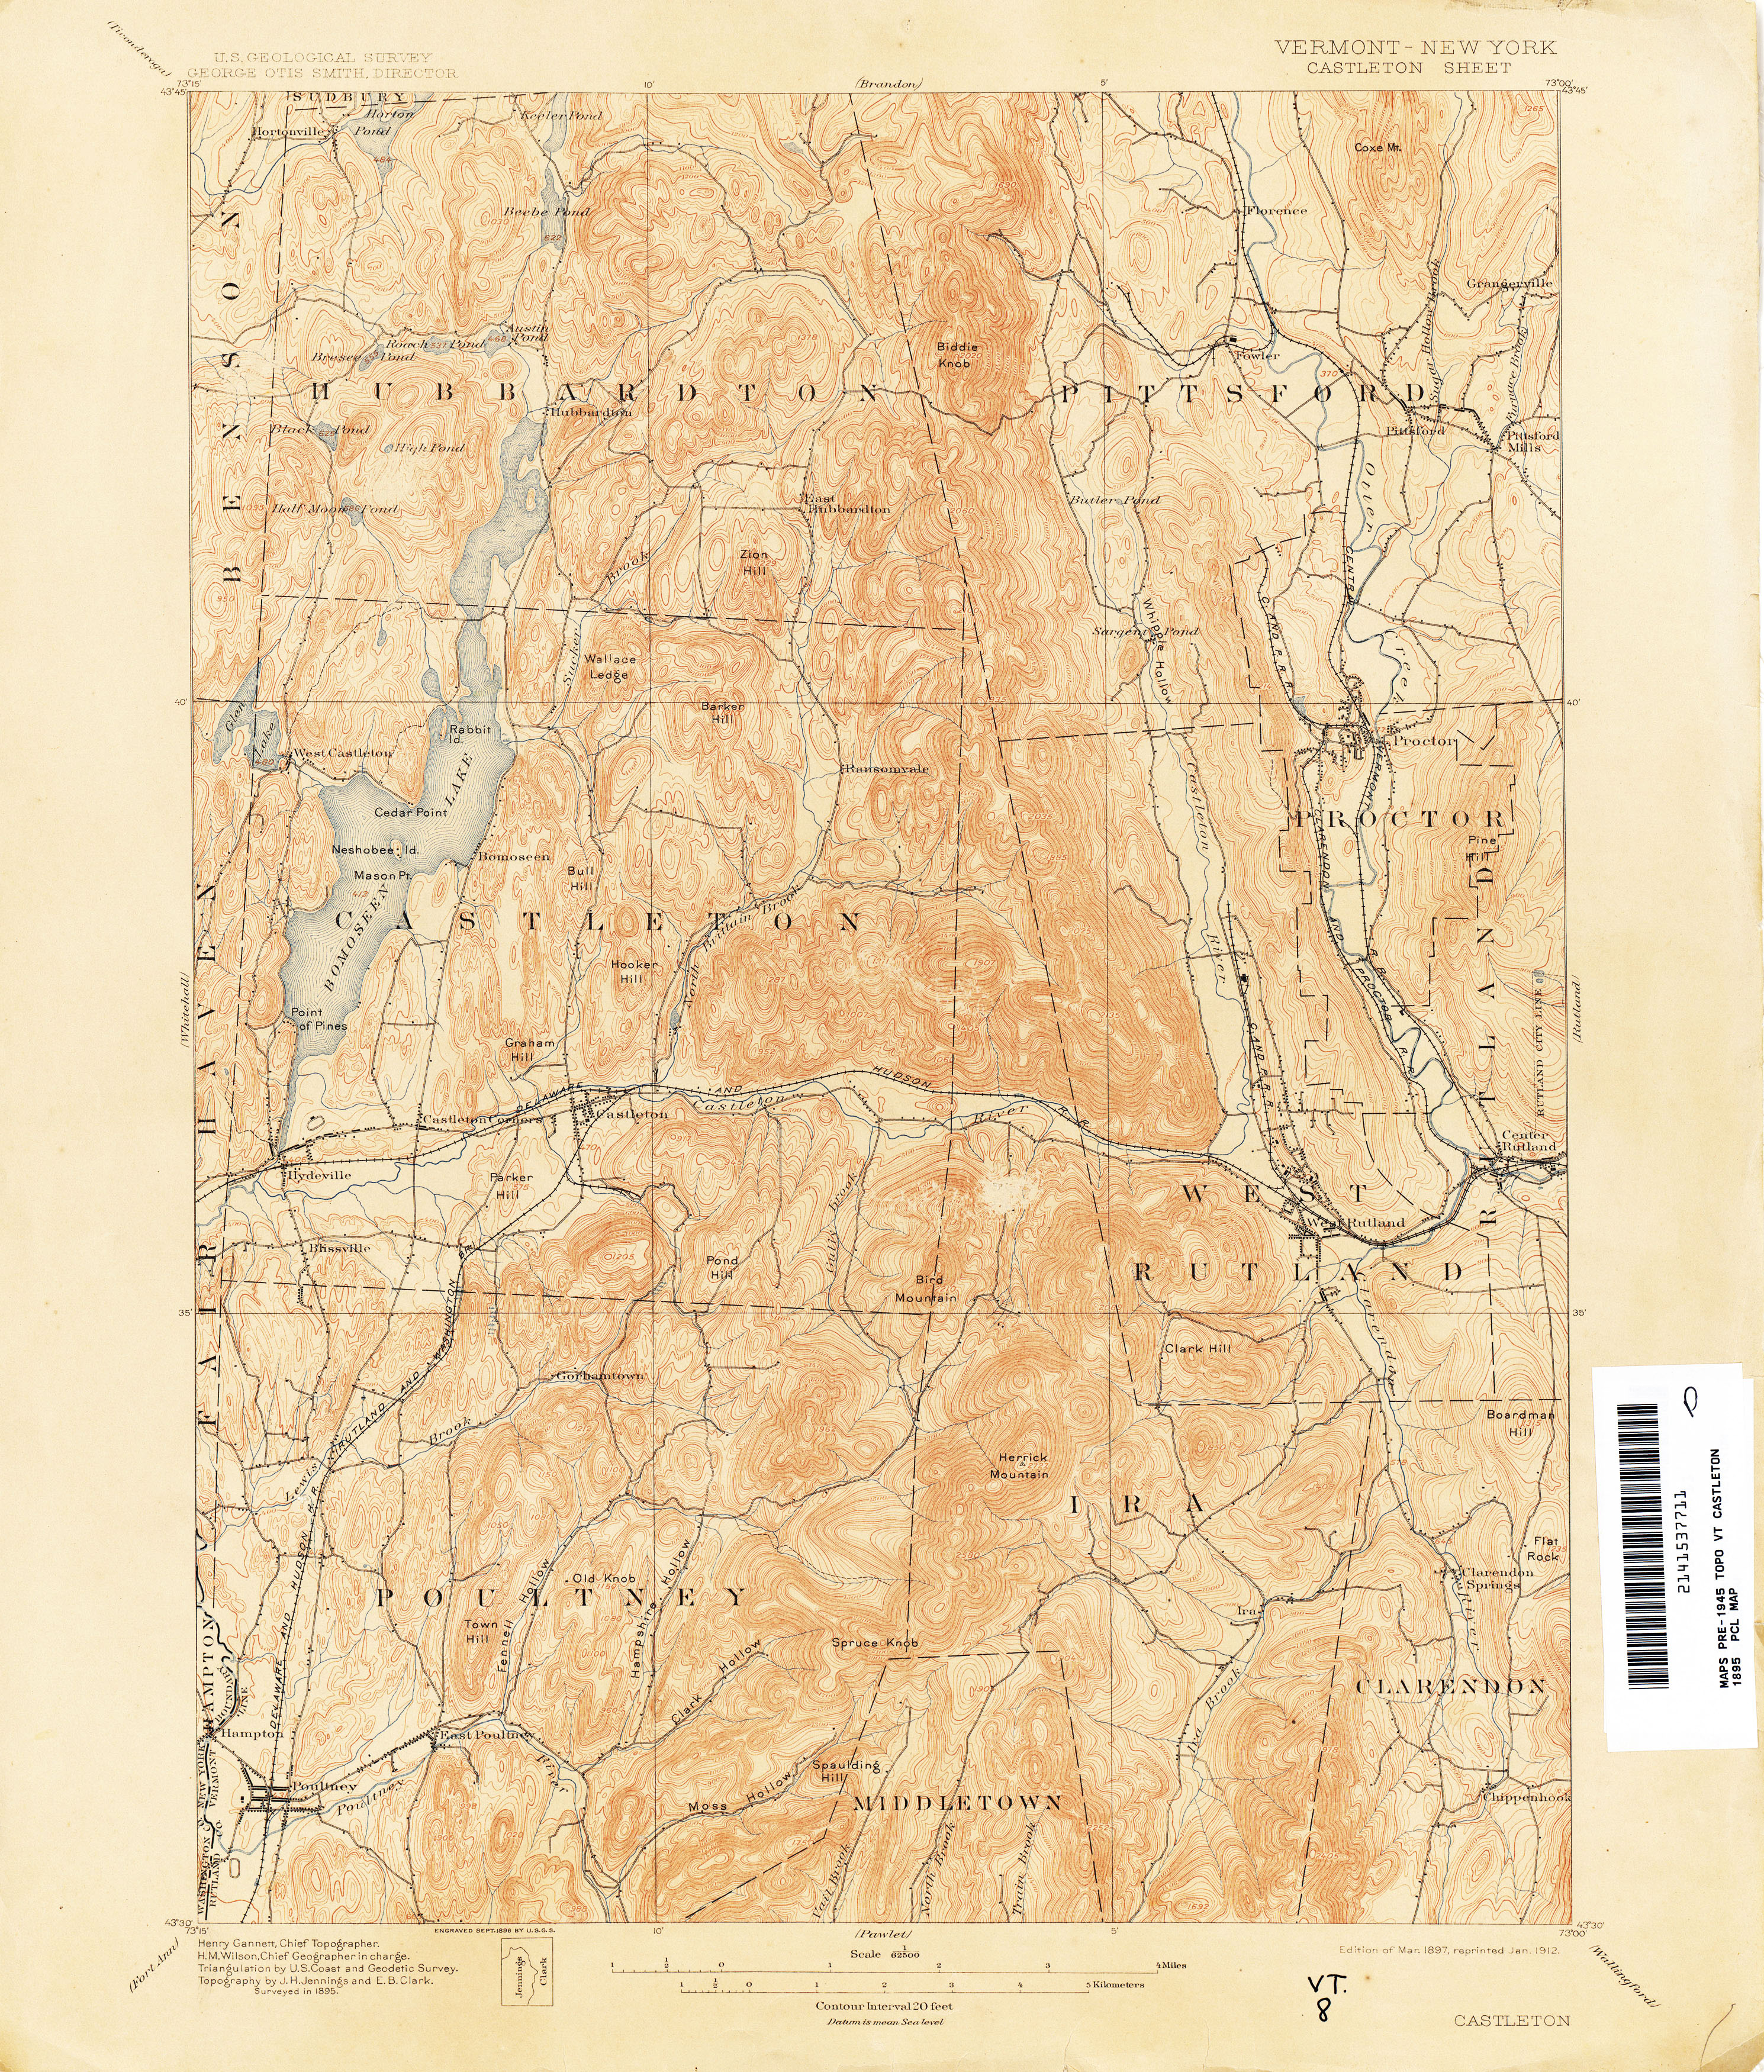 Topographic Map New York State.New York Topographic Maps Perry Castaneda Map Collection Ut